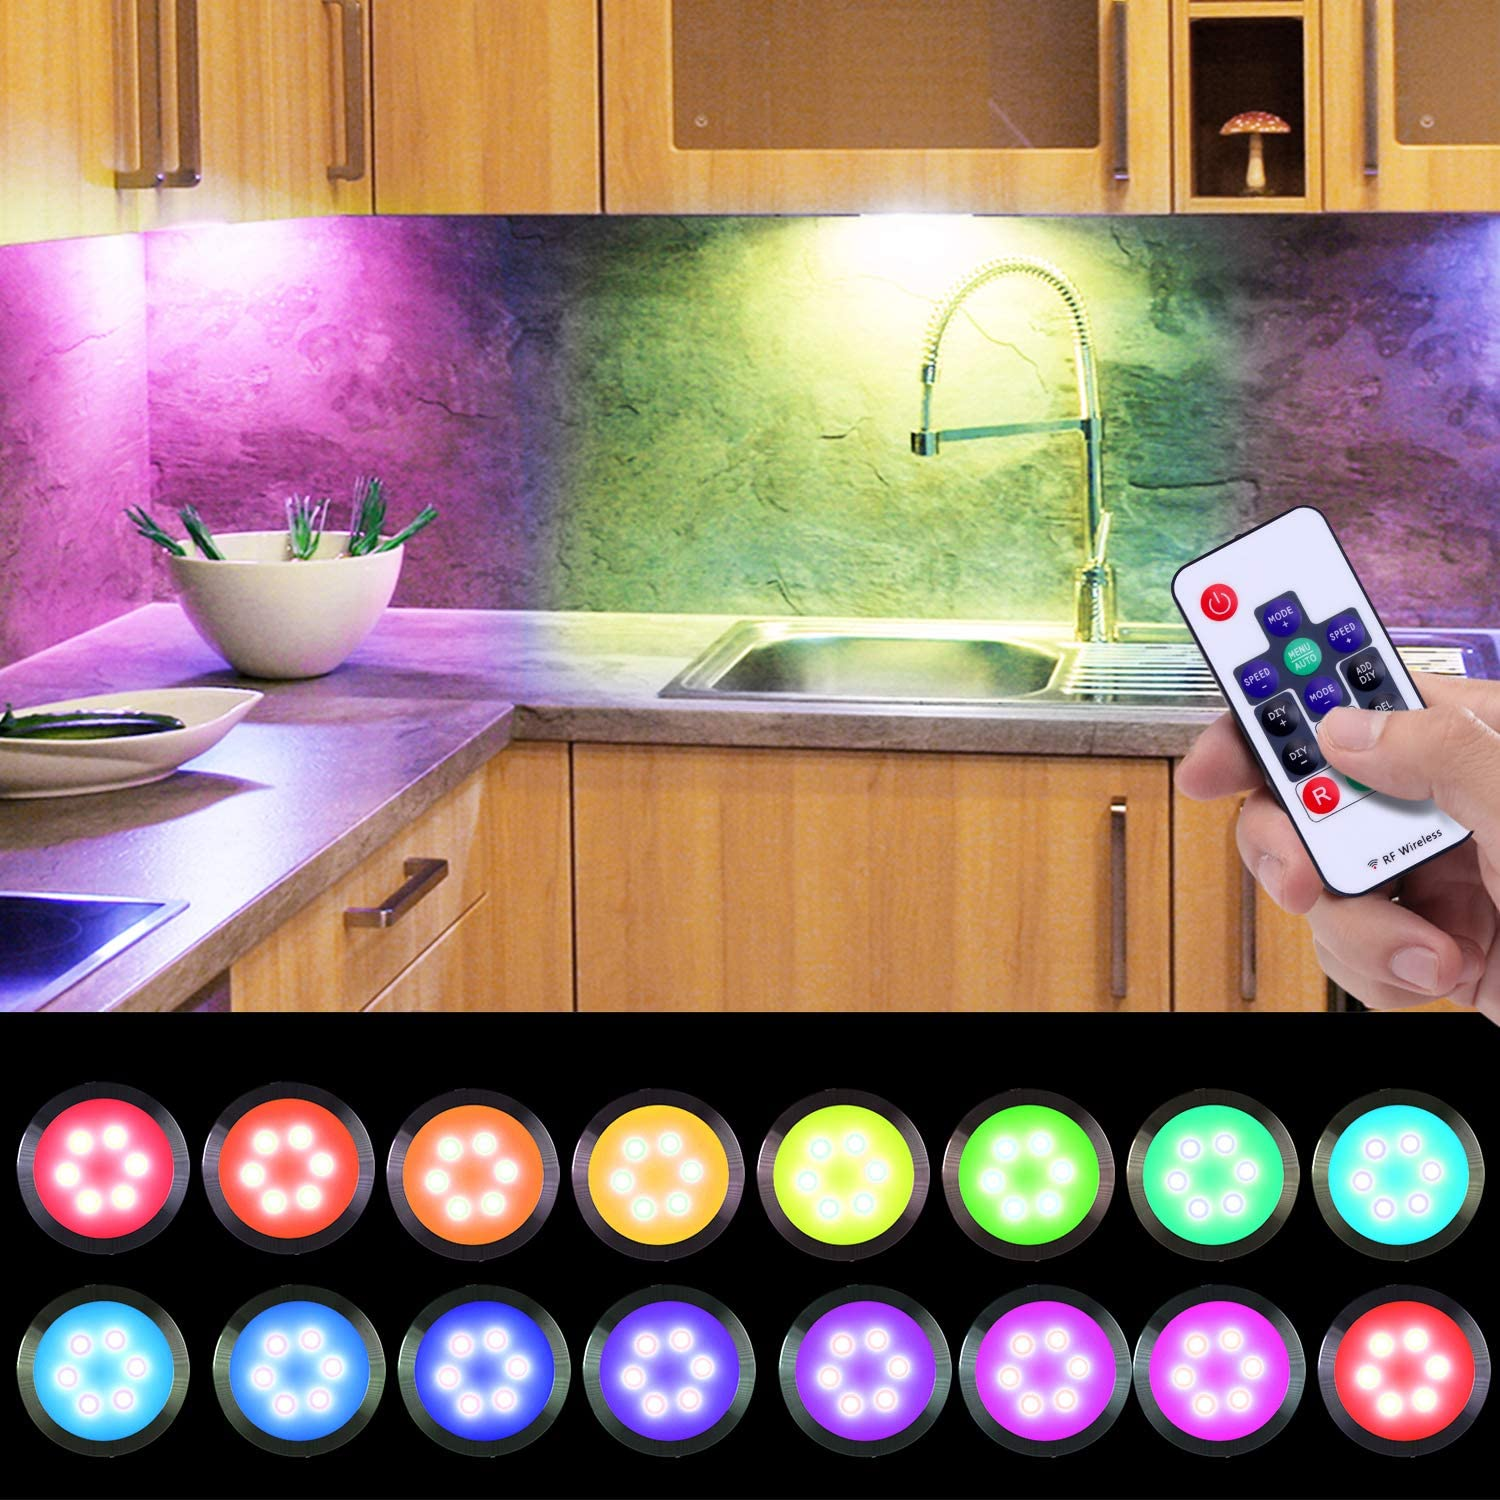 Buy Dream Color Under Cabinet Lights Aiboo Linkable Dimmable Color Changing Puck Lights Kit With 14 Keys Rf Remote Control 24v Rgb Under Cabinet Lighting Kit For Party Christmas Decorations 16 Pack Online